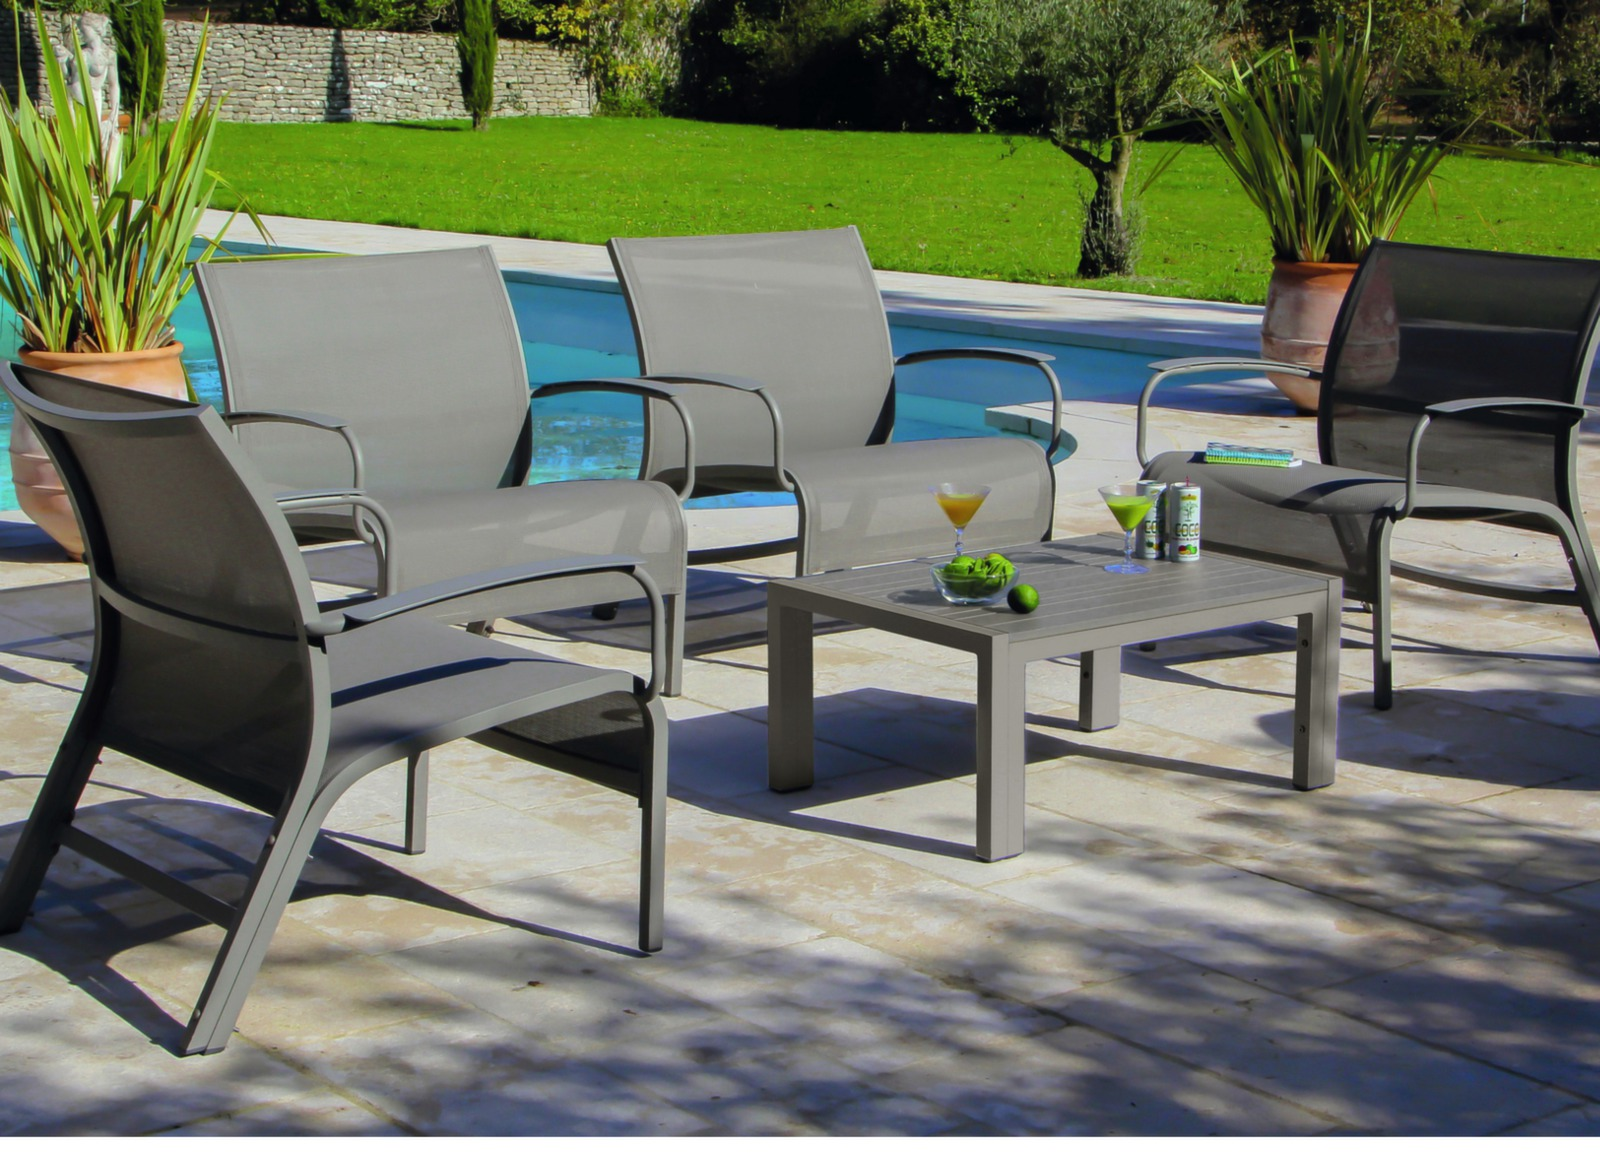 Salon de jardin lounge linea mobilier salon de jardin for Salon detente